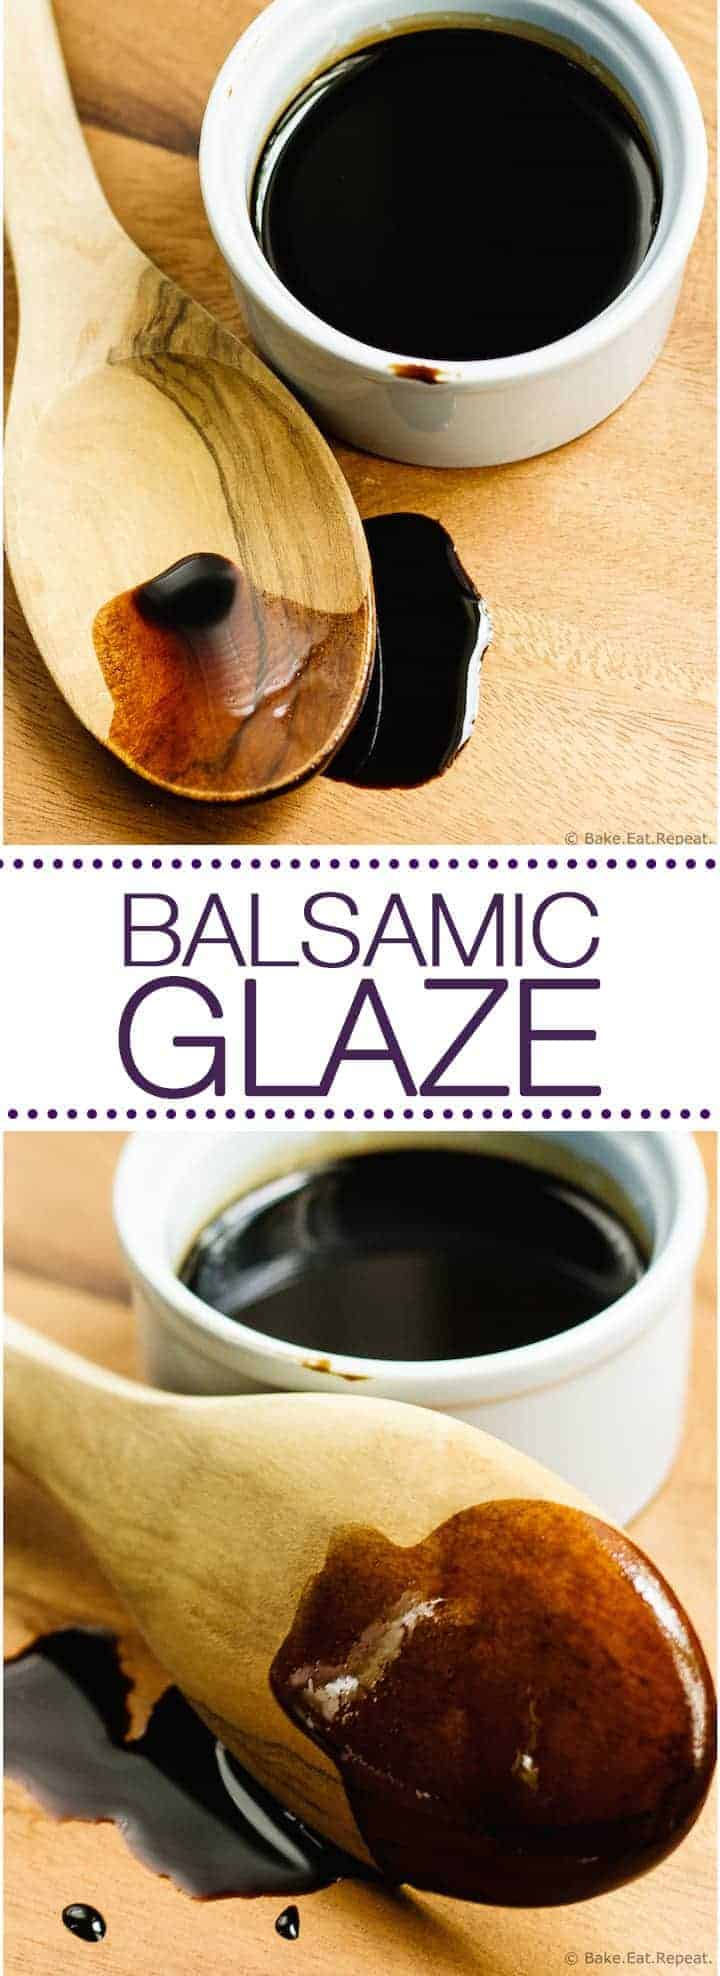 Easy to make, homemade balsamic glaze. The perfect condiment!